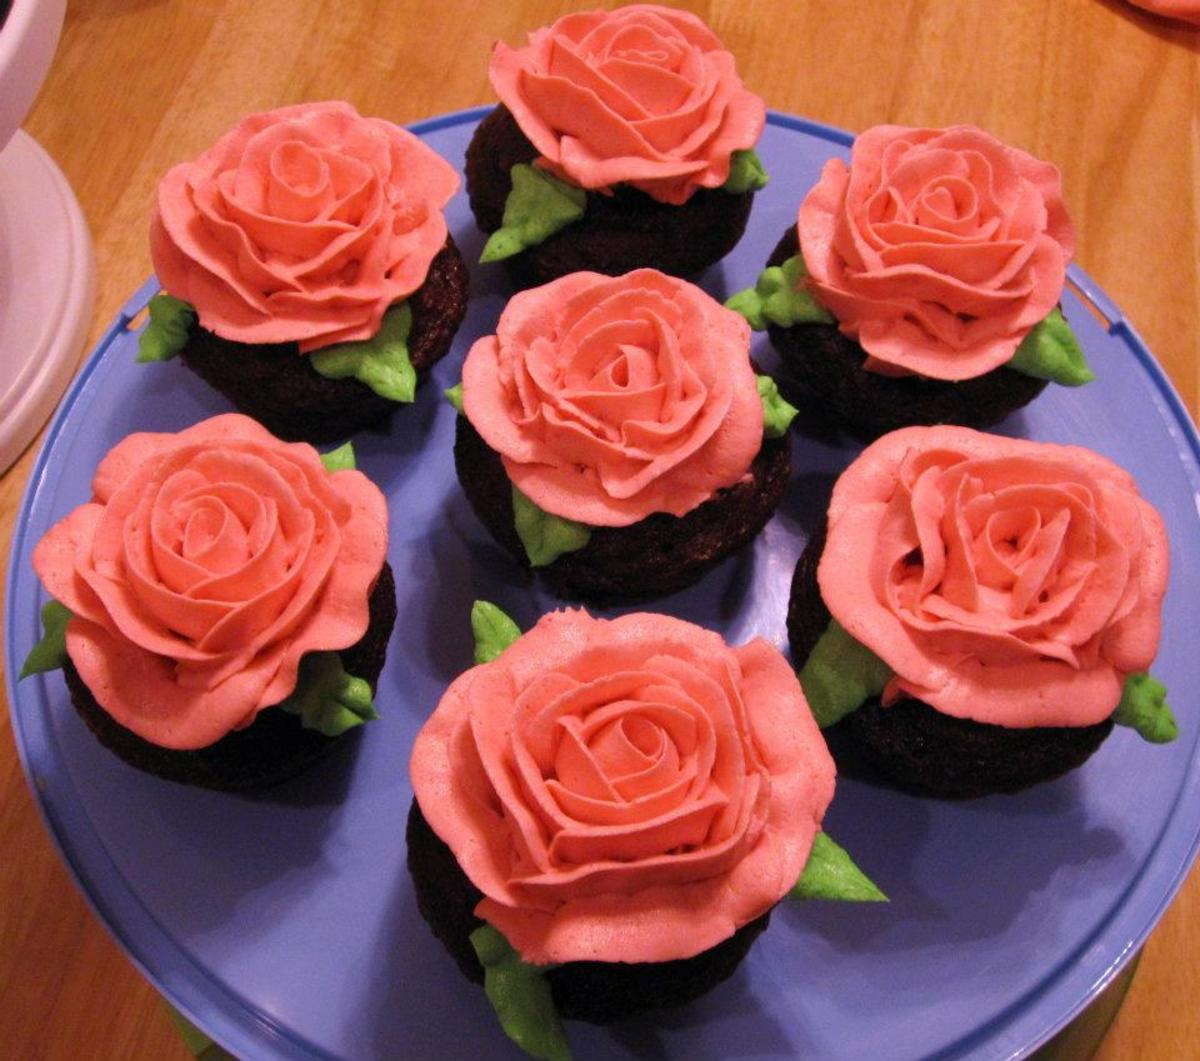 Cake Decorating How To Make Roses : How to Make Buttercream Frosting/Icing, Perfect for ...